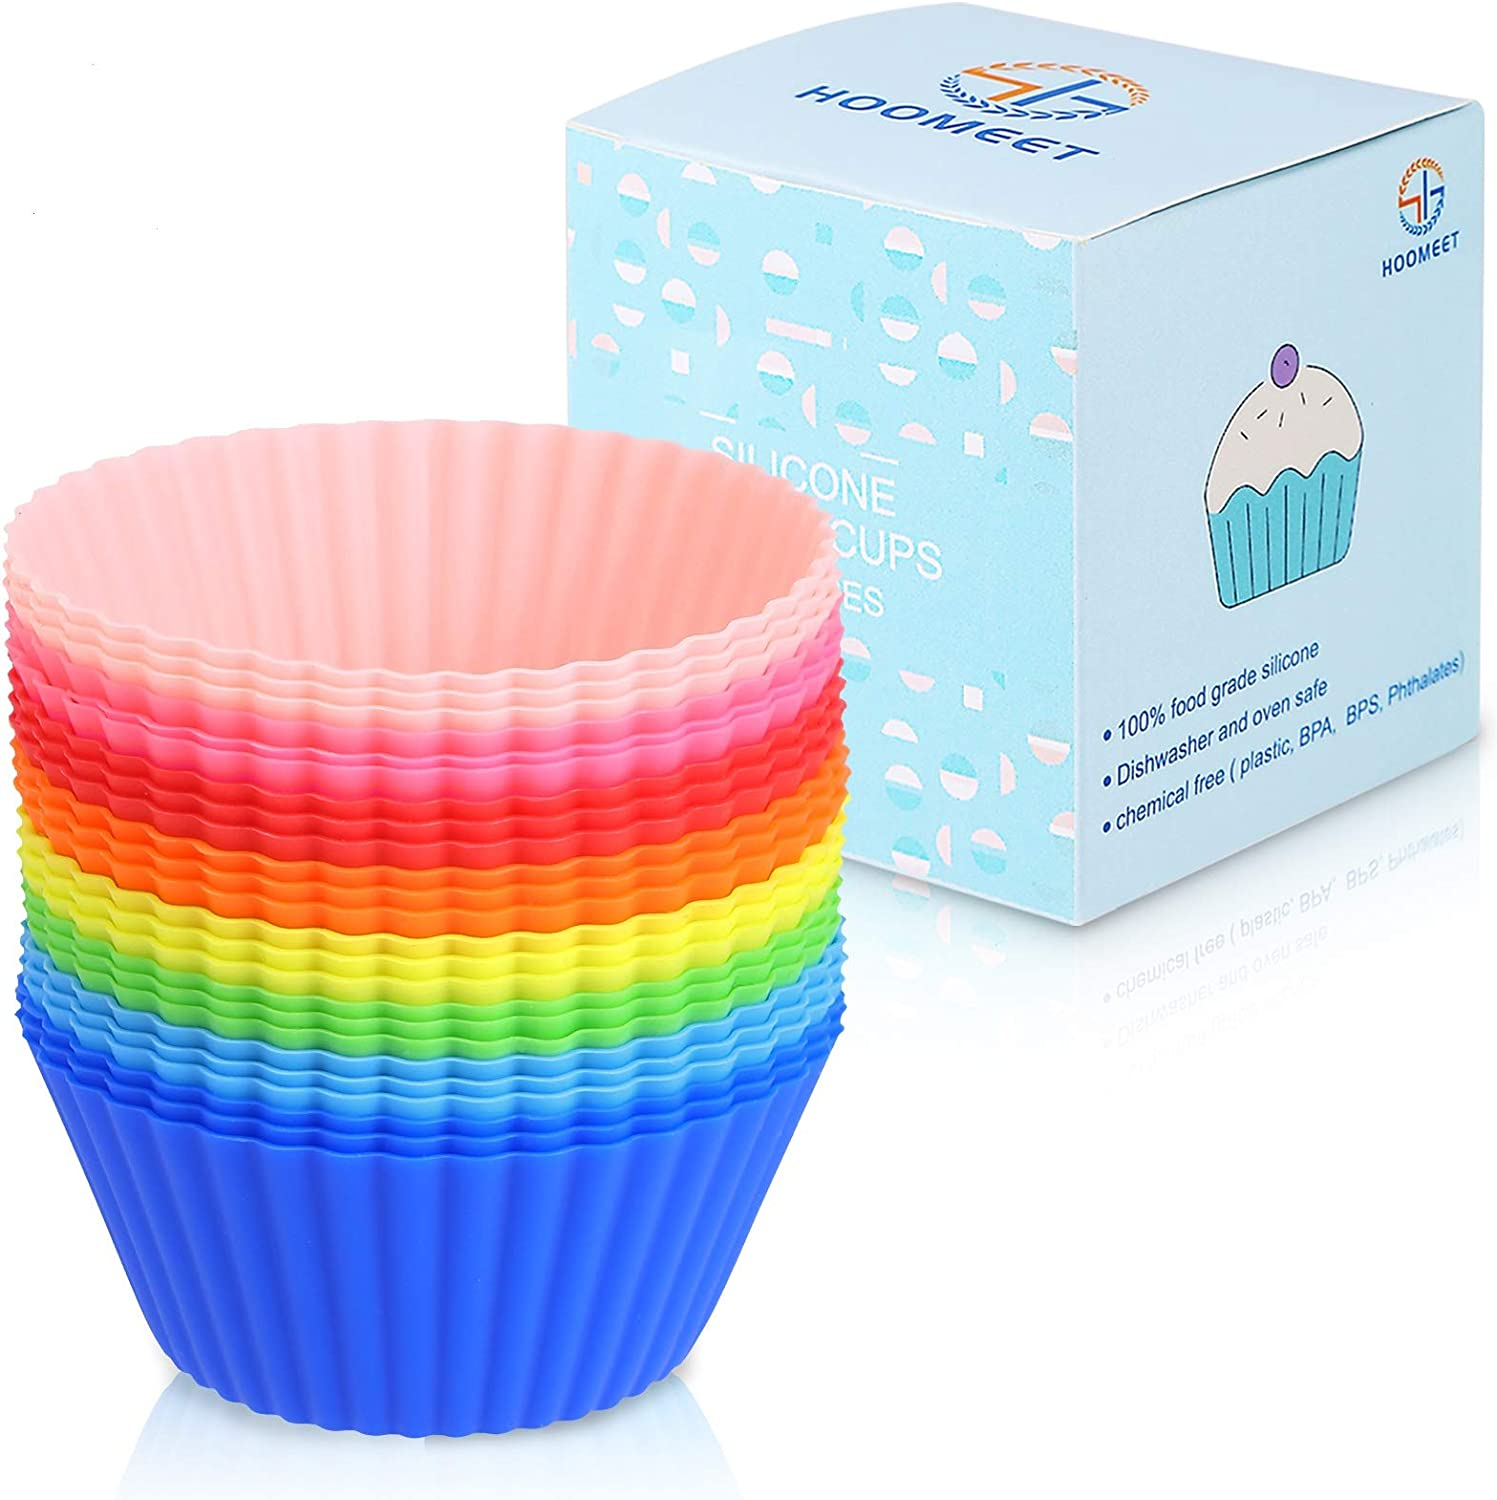 HOOMEET 24 Pack 100% Food Grade Silicone Muffin Liners, Non-Stick Cupcake Baking Cups, Cupcake Liners for Baking, Silicone Molds, Reusable Cupcake Liners, Red Blue Green Yellow Pink Orange Color